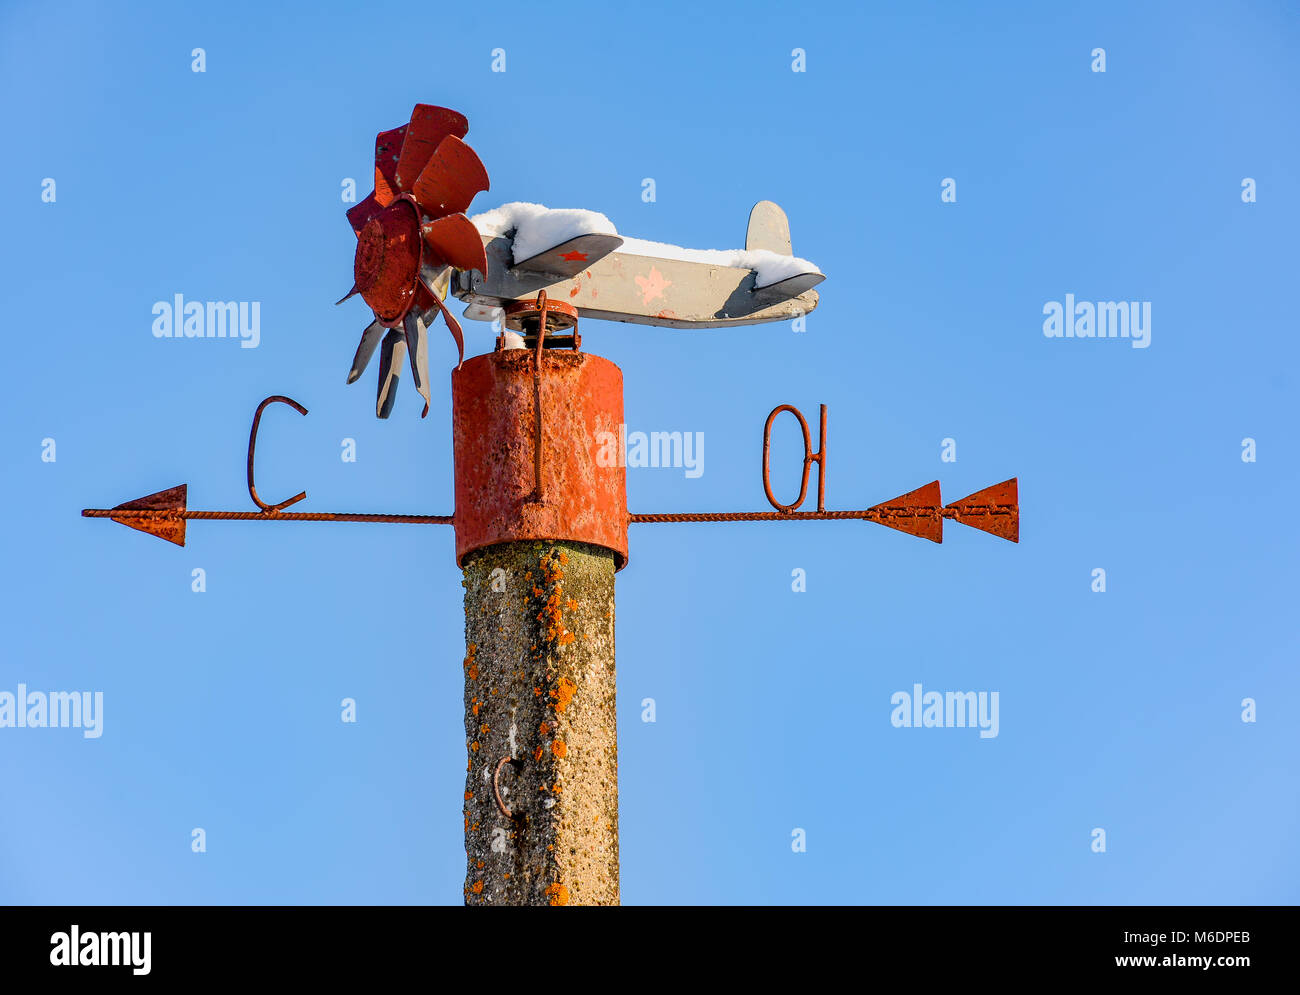 Homemade weather vane in the form of an airplane on a pole - Stock Image